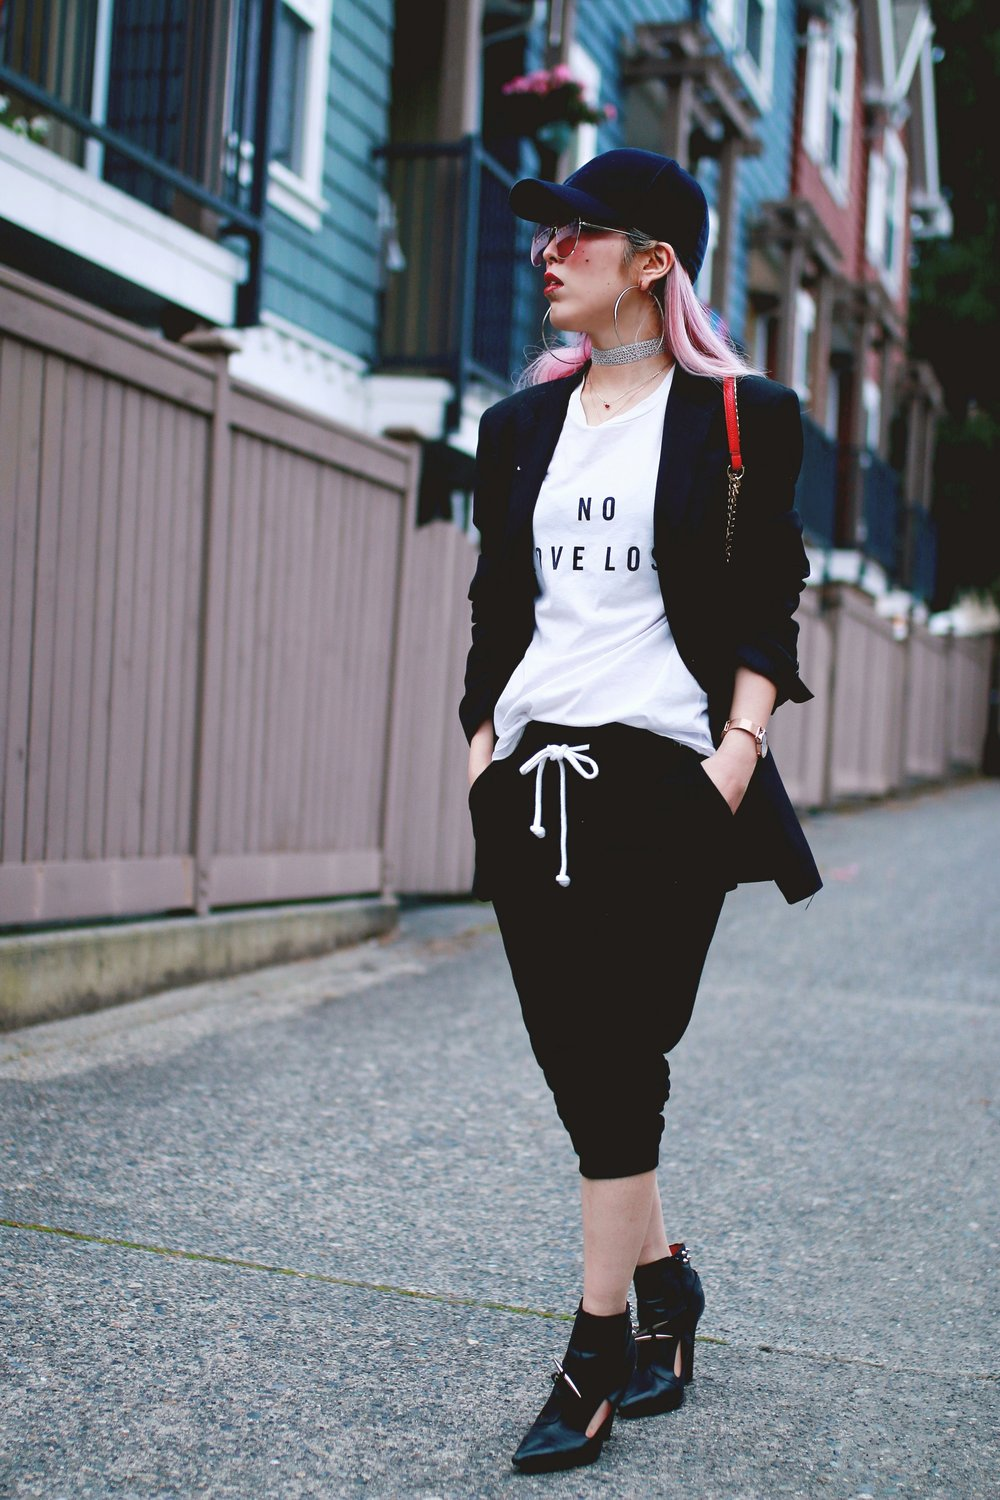 H&M Baseball Cap_Shop Sincerely Jules No LOVE LOST Tee_H&M Sweatpants_YSL Boyfriend Blazer_Zara Choker_Forever 21 Hoop Earrings_Mellow World Red Bag_Jeffrey Campbell Booties_L'Oreal Red Lipstick_Aikas Love Closet_Seattle Fashion Style Blogger_Pink Hair 4